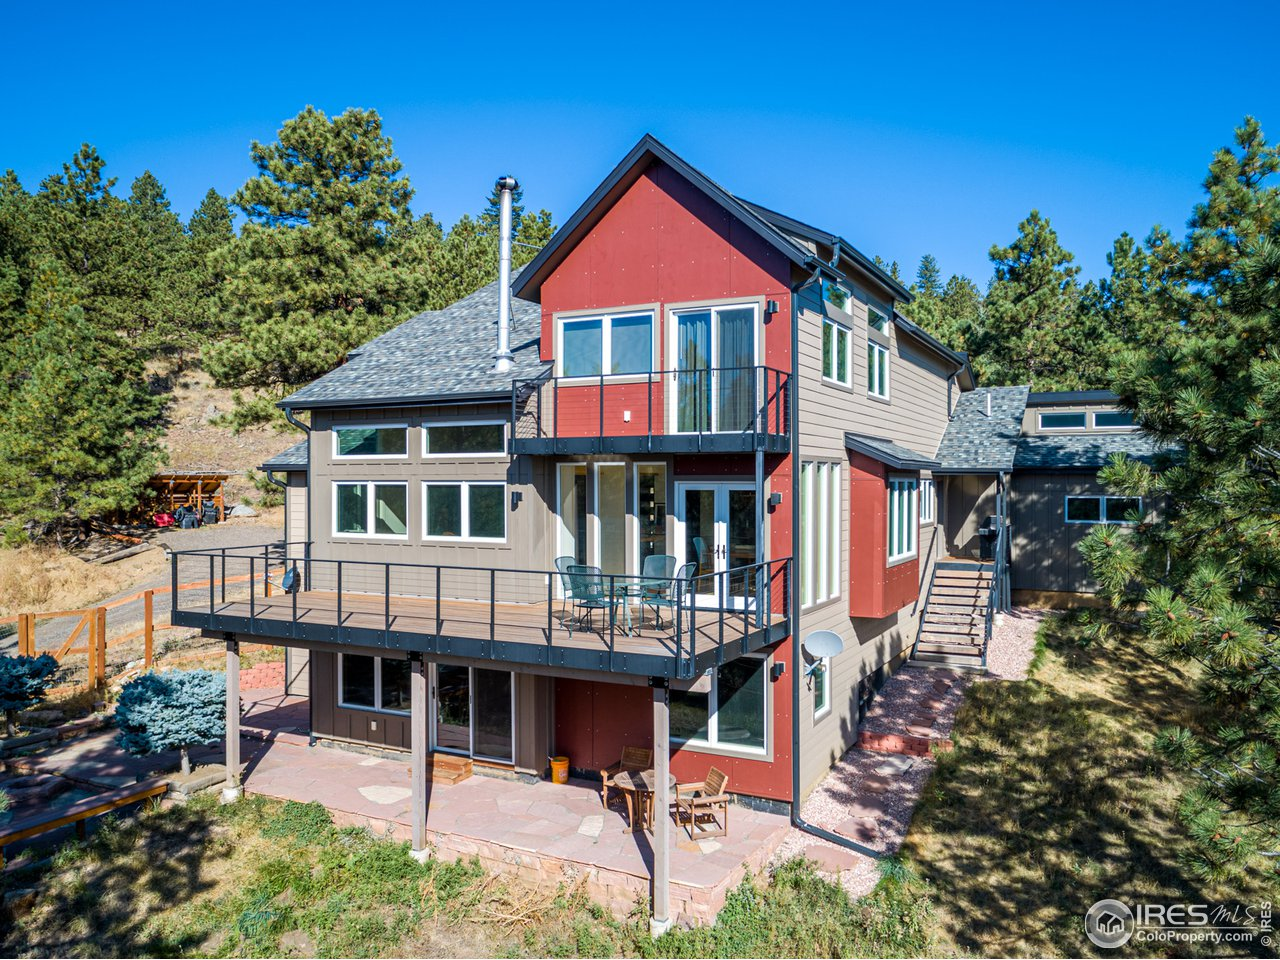 721 Cougar Dr, Boulder CO 80302